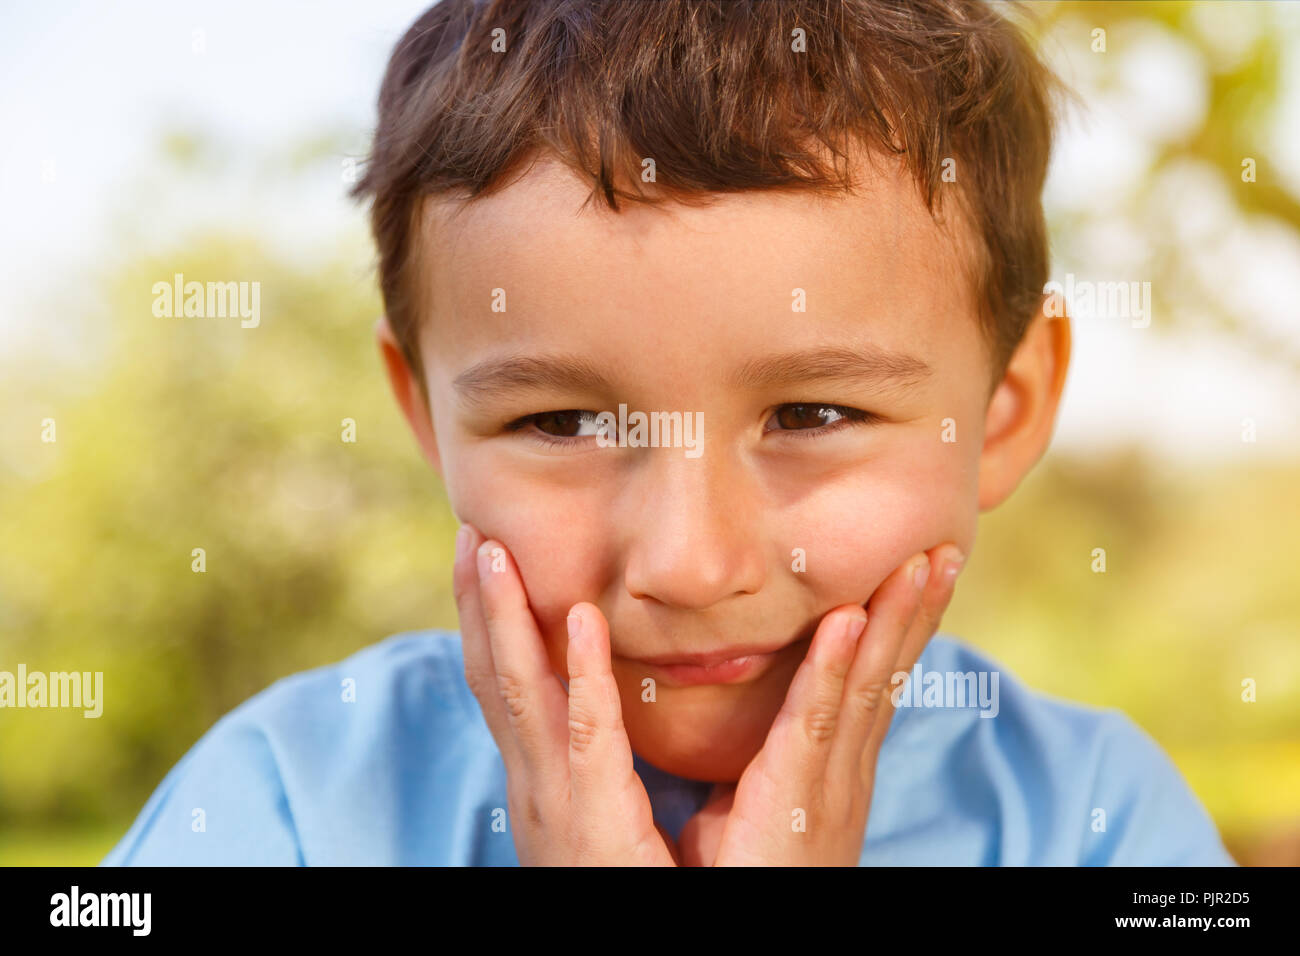 Child kid little boy thinking looking sorrow worry outdoor copyspace copy space outdoors outside nature - Stock Image